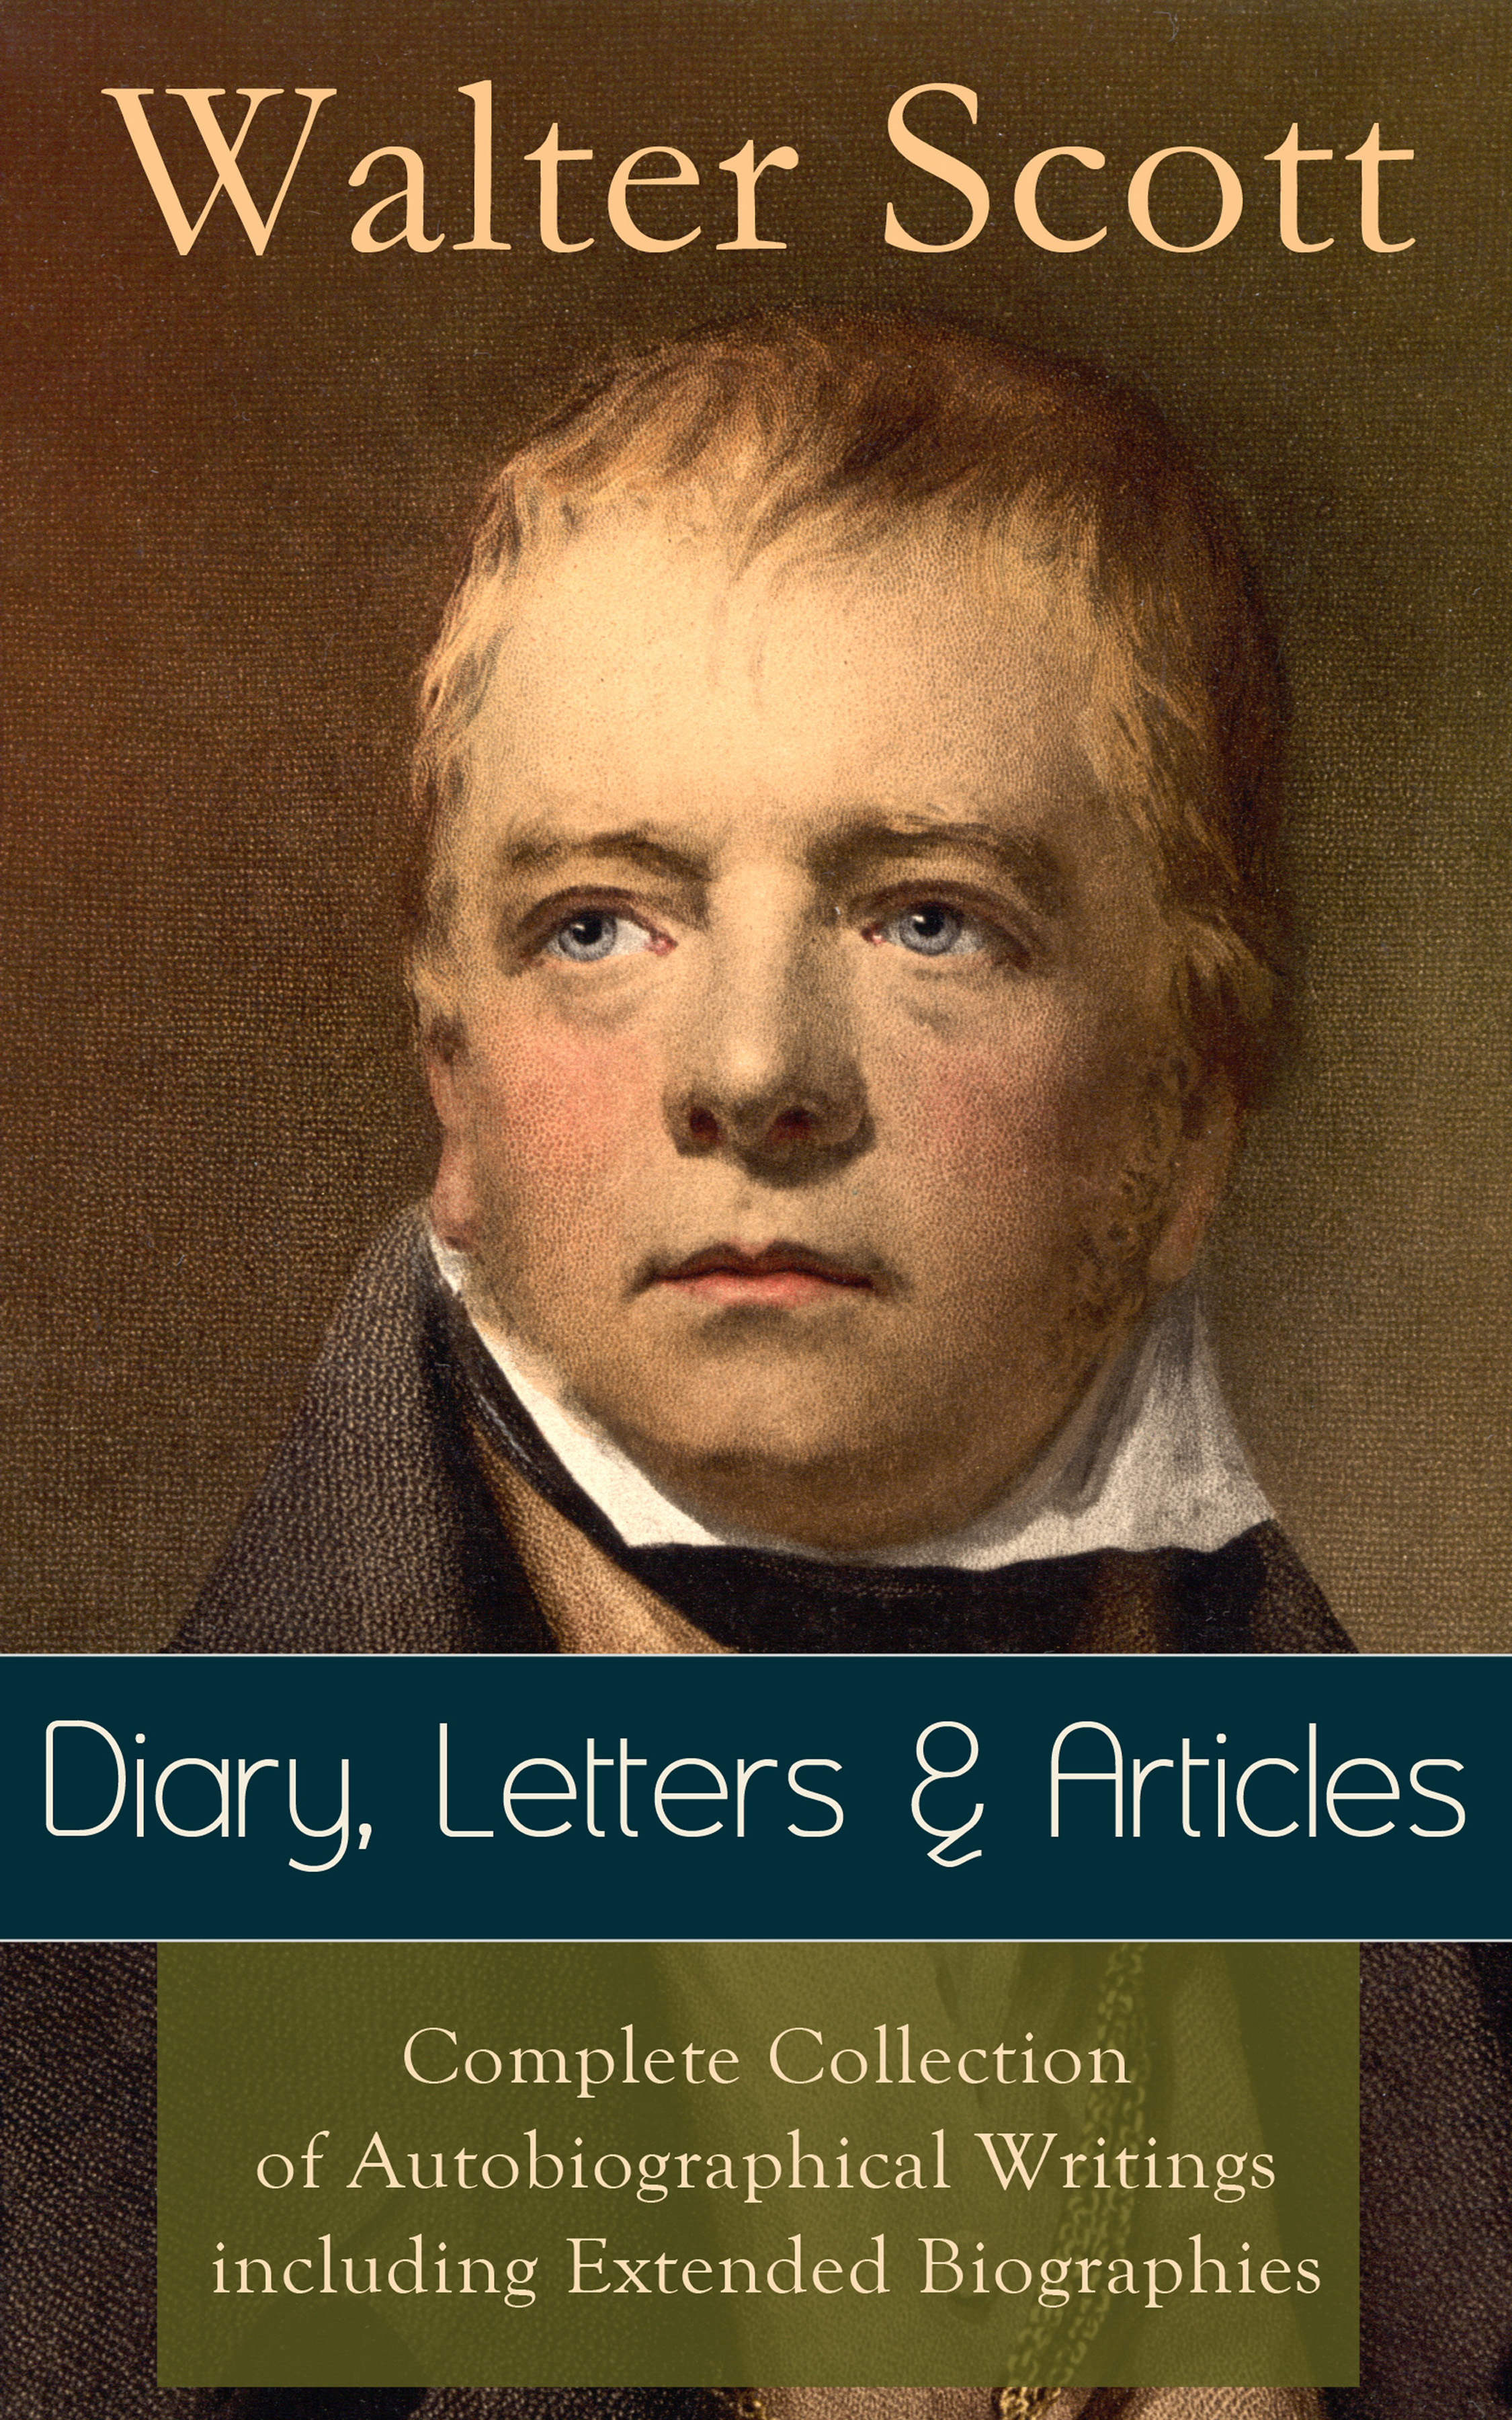 Walter Scott Sir Walter Scott: Diary, Letters & Articles - Complete Collection of Autobiographical Writings including Extended Biographies scott walter woodstock 2